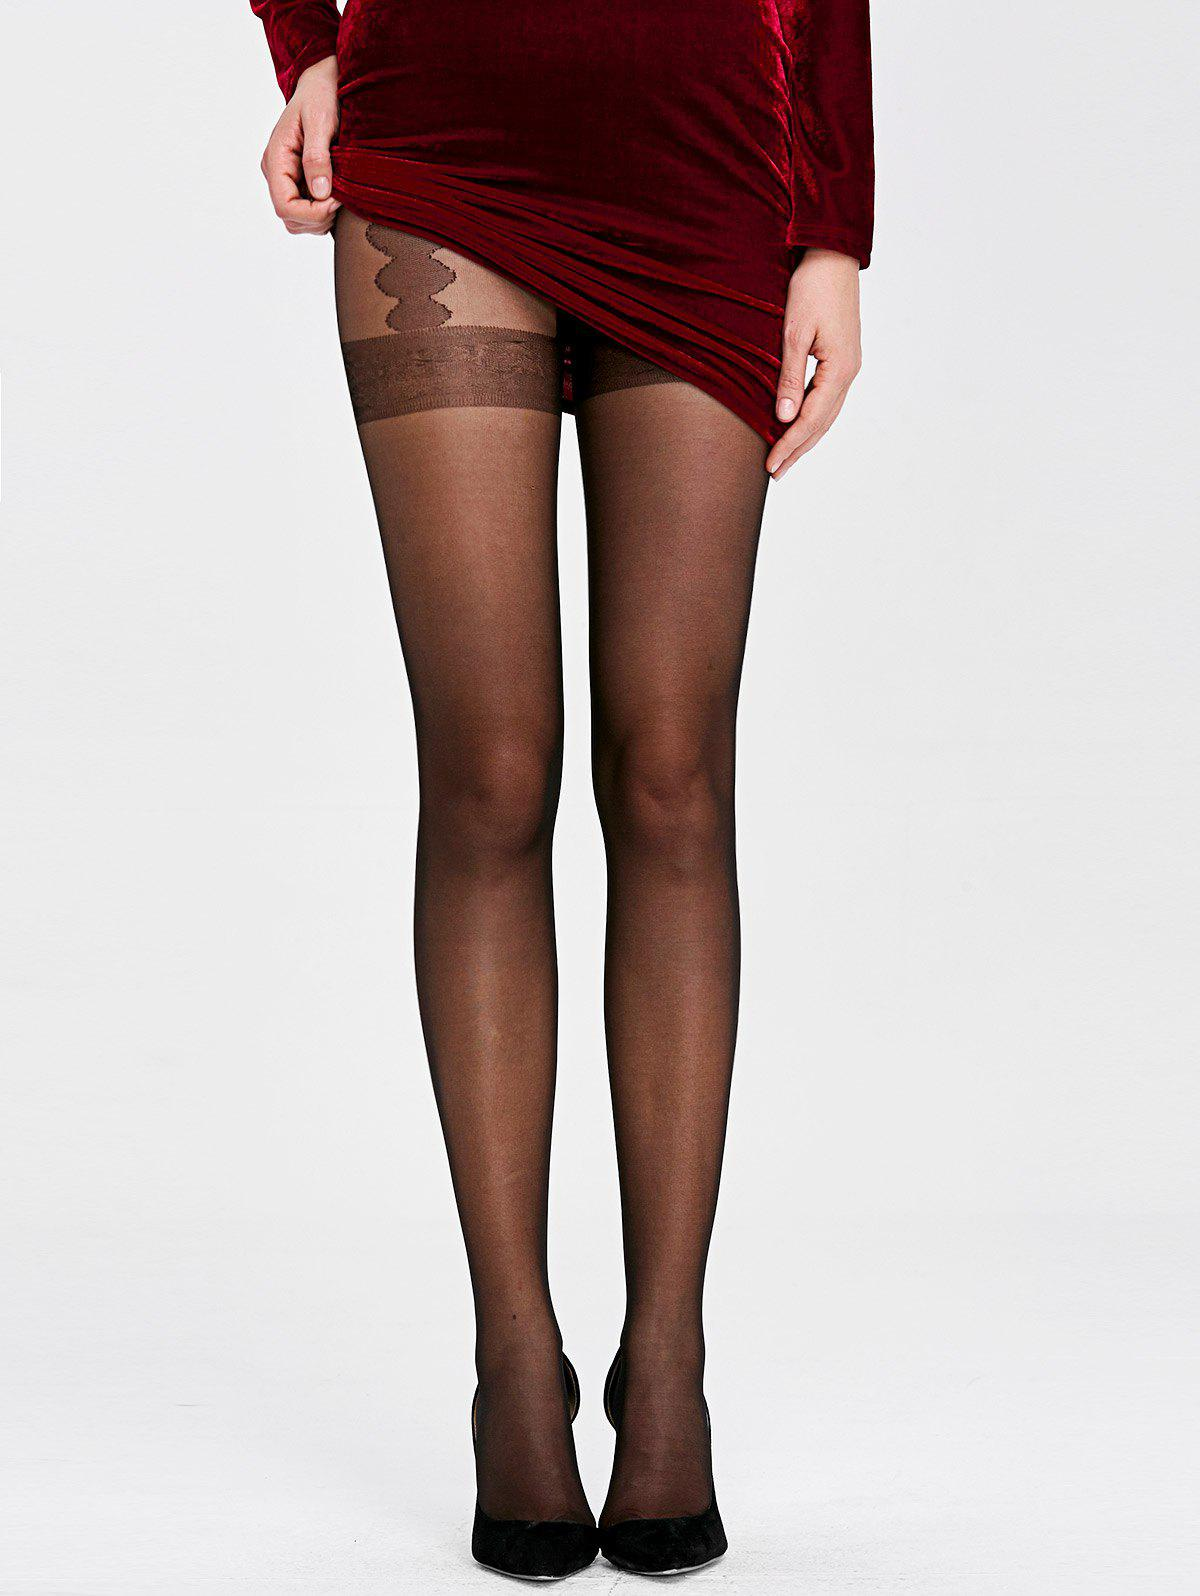 See Through Sheer TightsWomen<br><br><br>Size: ONE SIZE<br>Color: BLACK